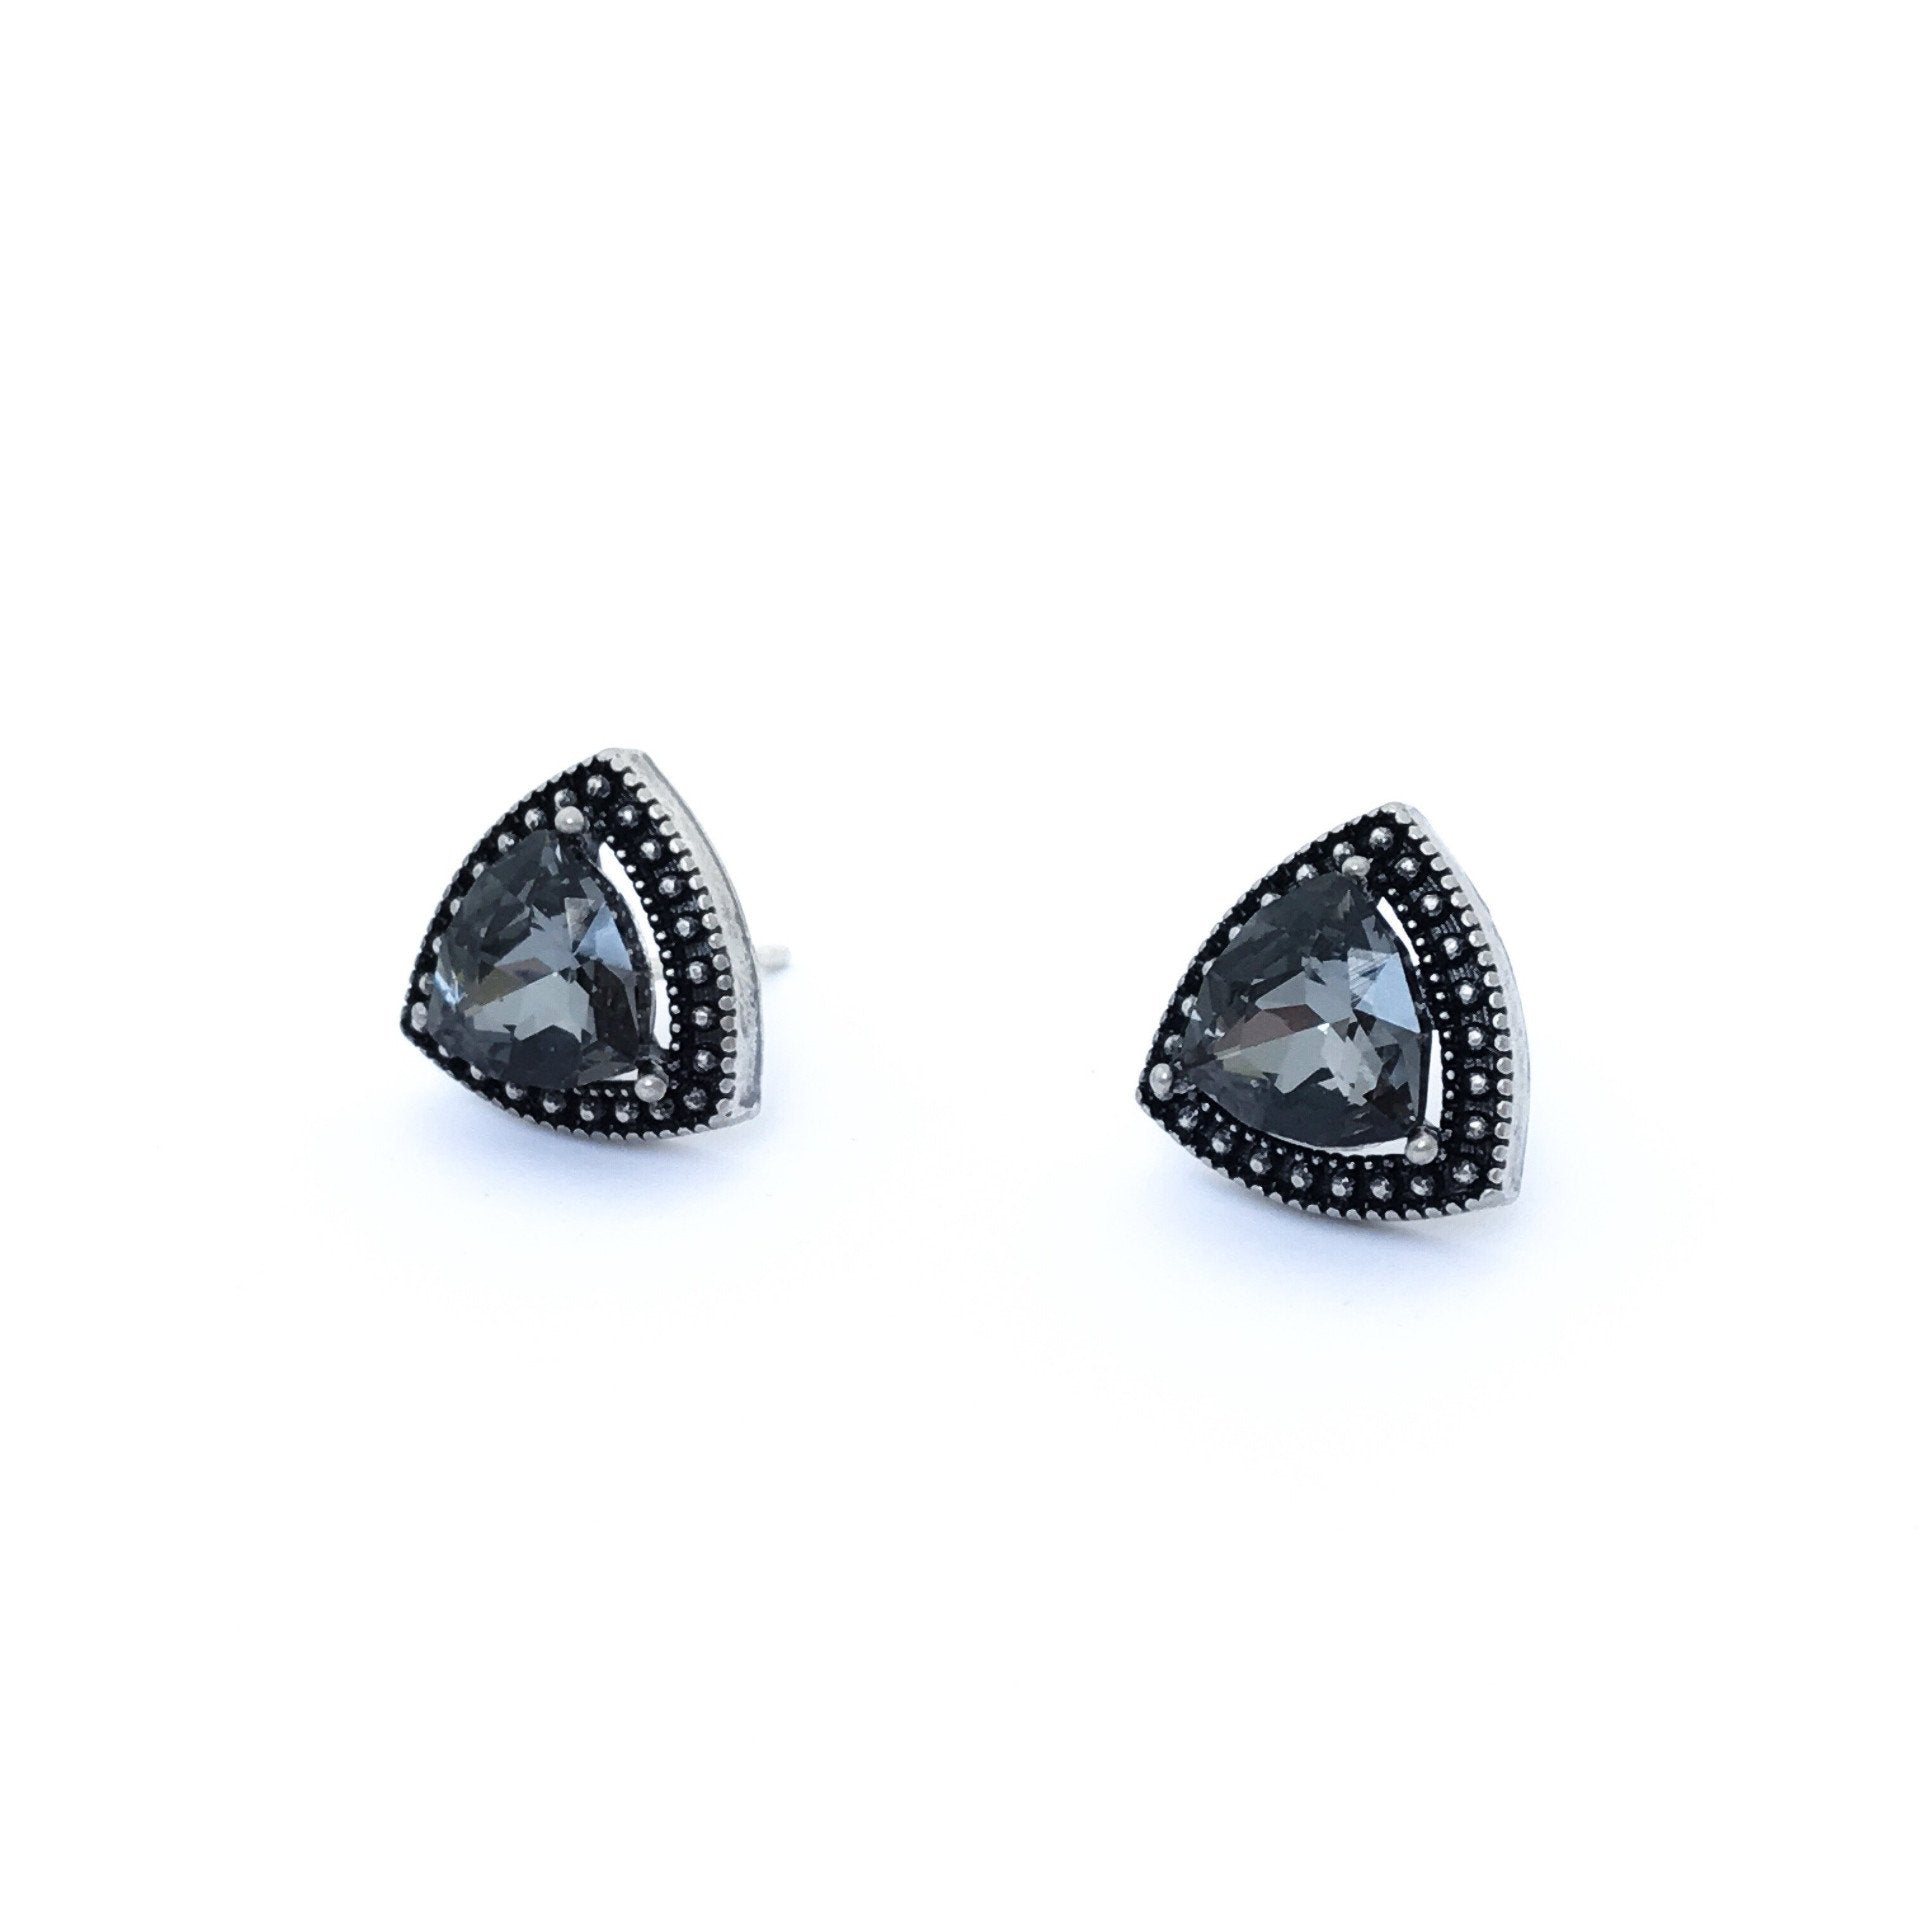 clear swarovski earrings crystal stud flower black diamond diameter white